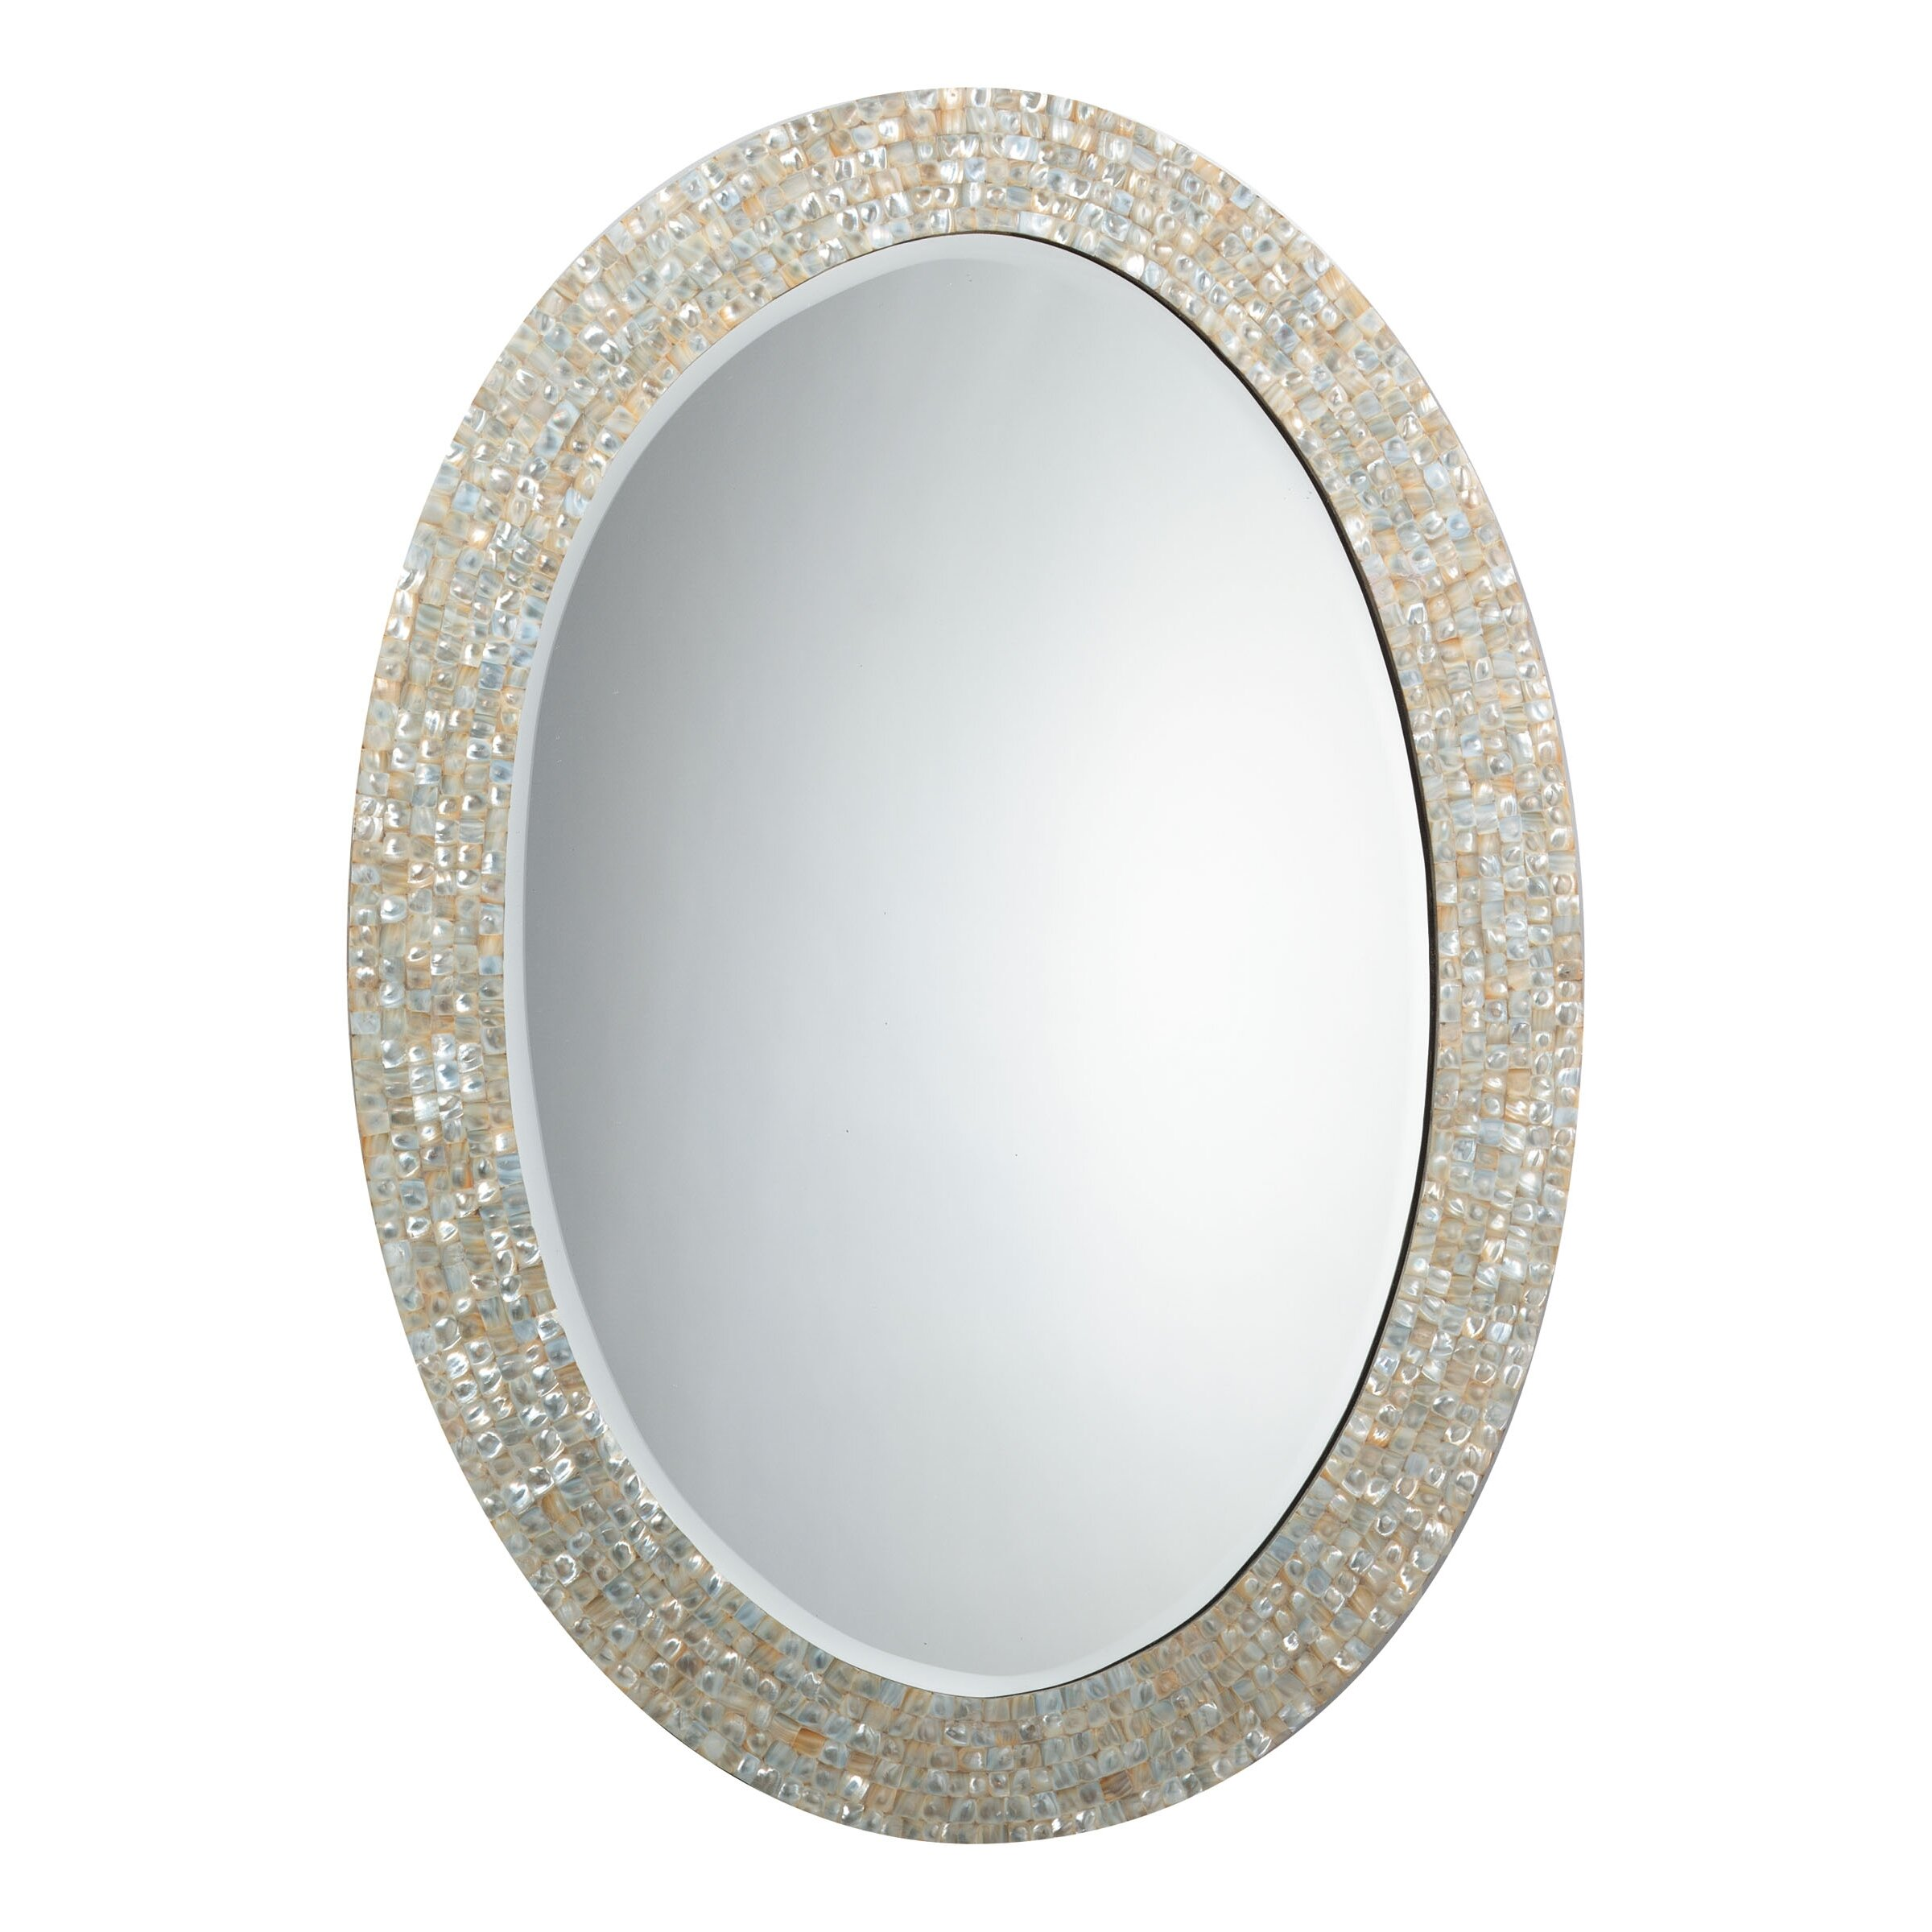 Jamie Young Company Oval Mother Of Pearl Mirror Reviews Wayfair